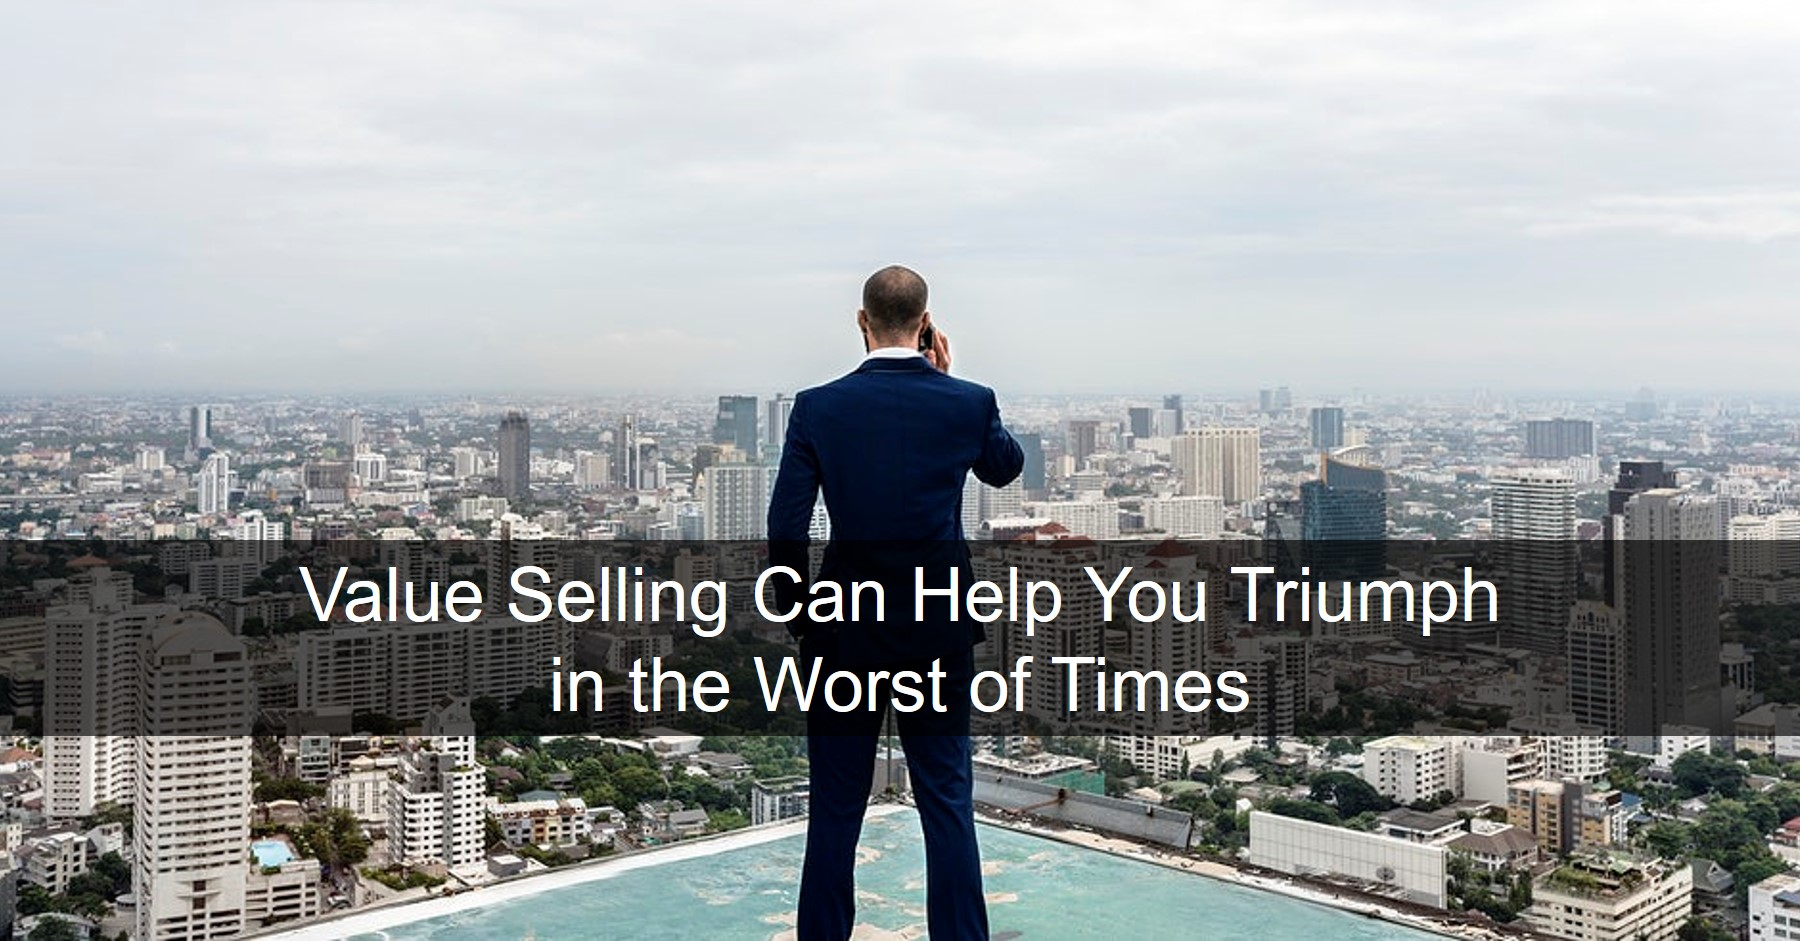 Value Selling Can Lead to B2B Sales Growth